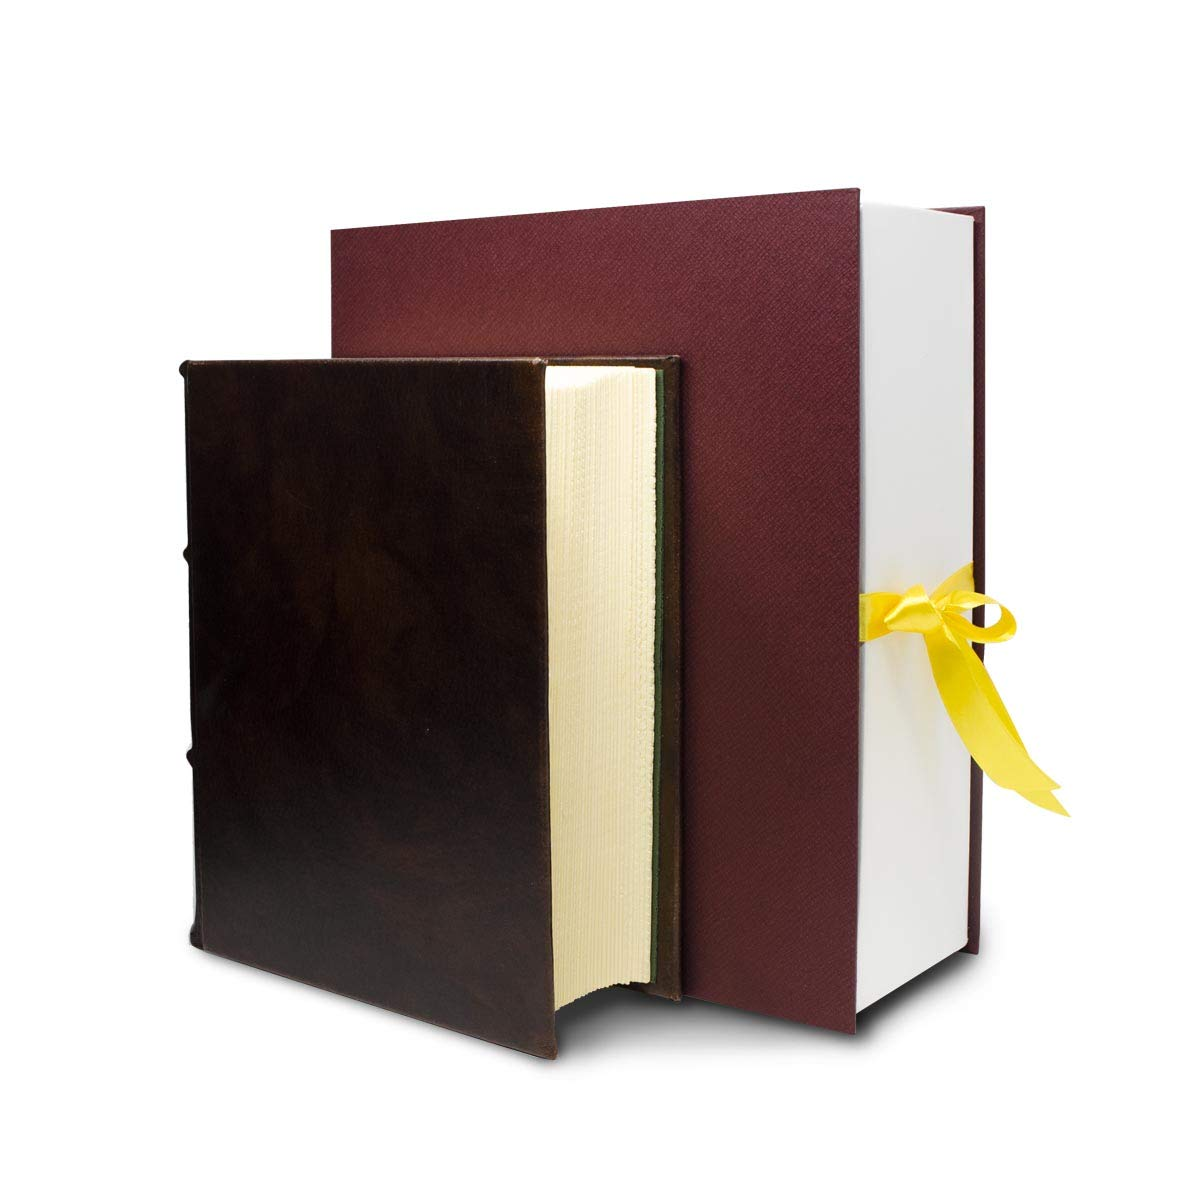 WORLD'S THICKEST JOURNAL with over 1000 Hand-Cut archival writing/drawing pages. Handmade in Premium Italian Leather. 8x10in | Epica by Epica Journals & Albums